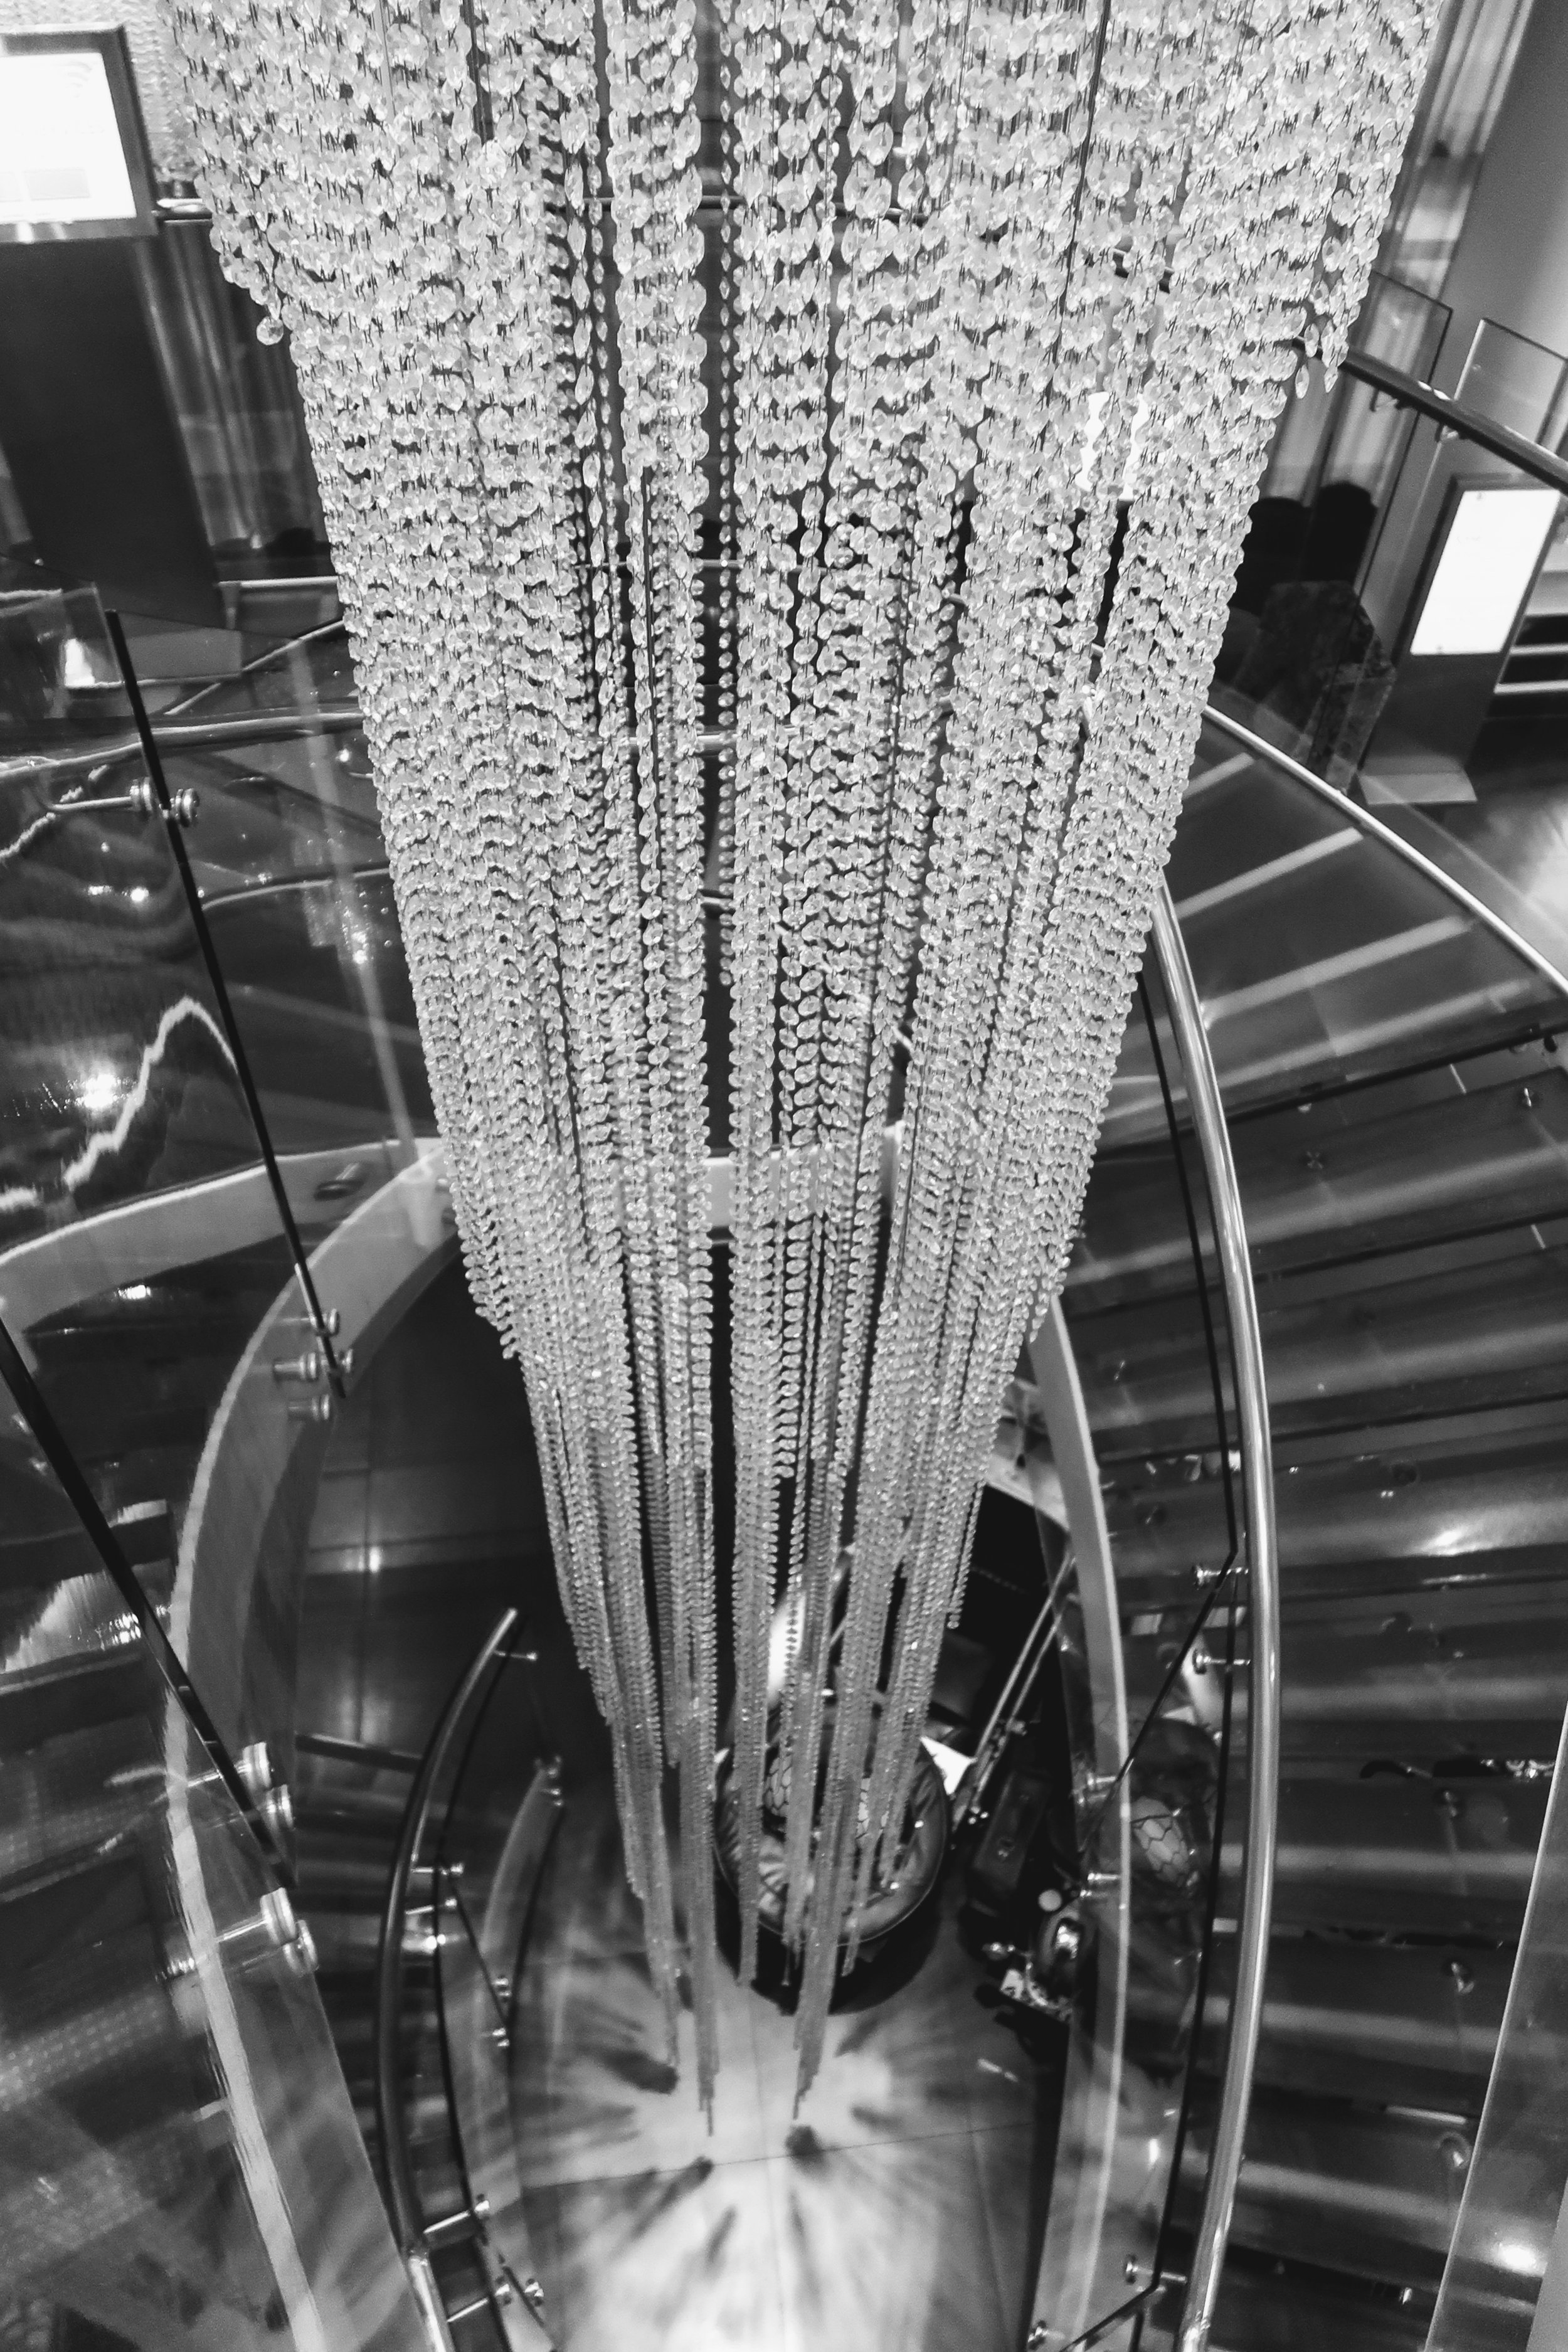 Impressive chandelier to give off the WOW factor!